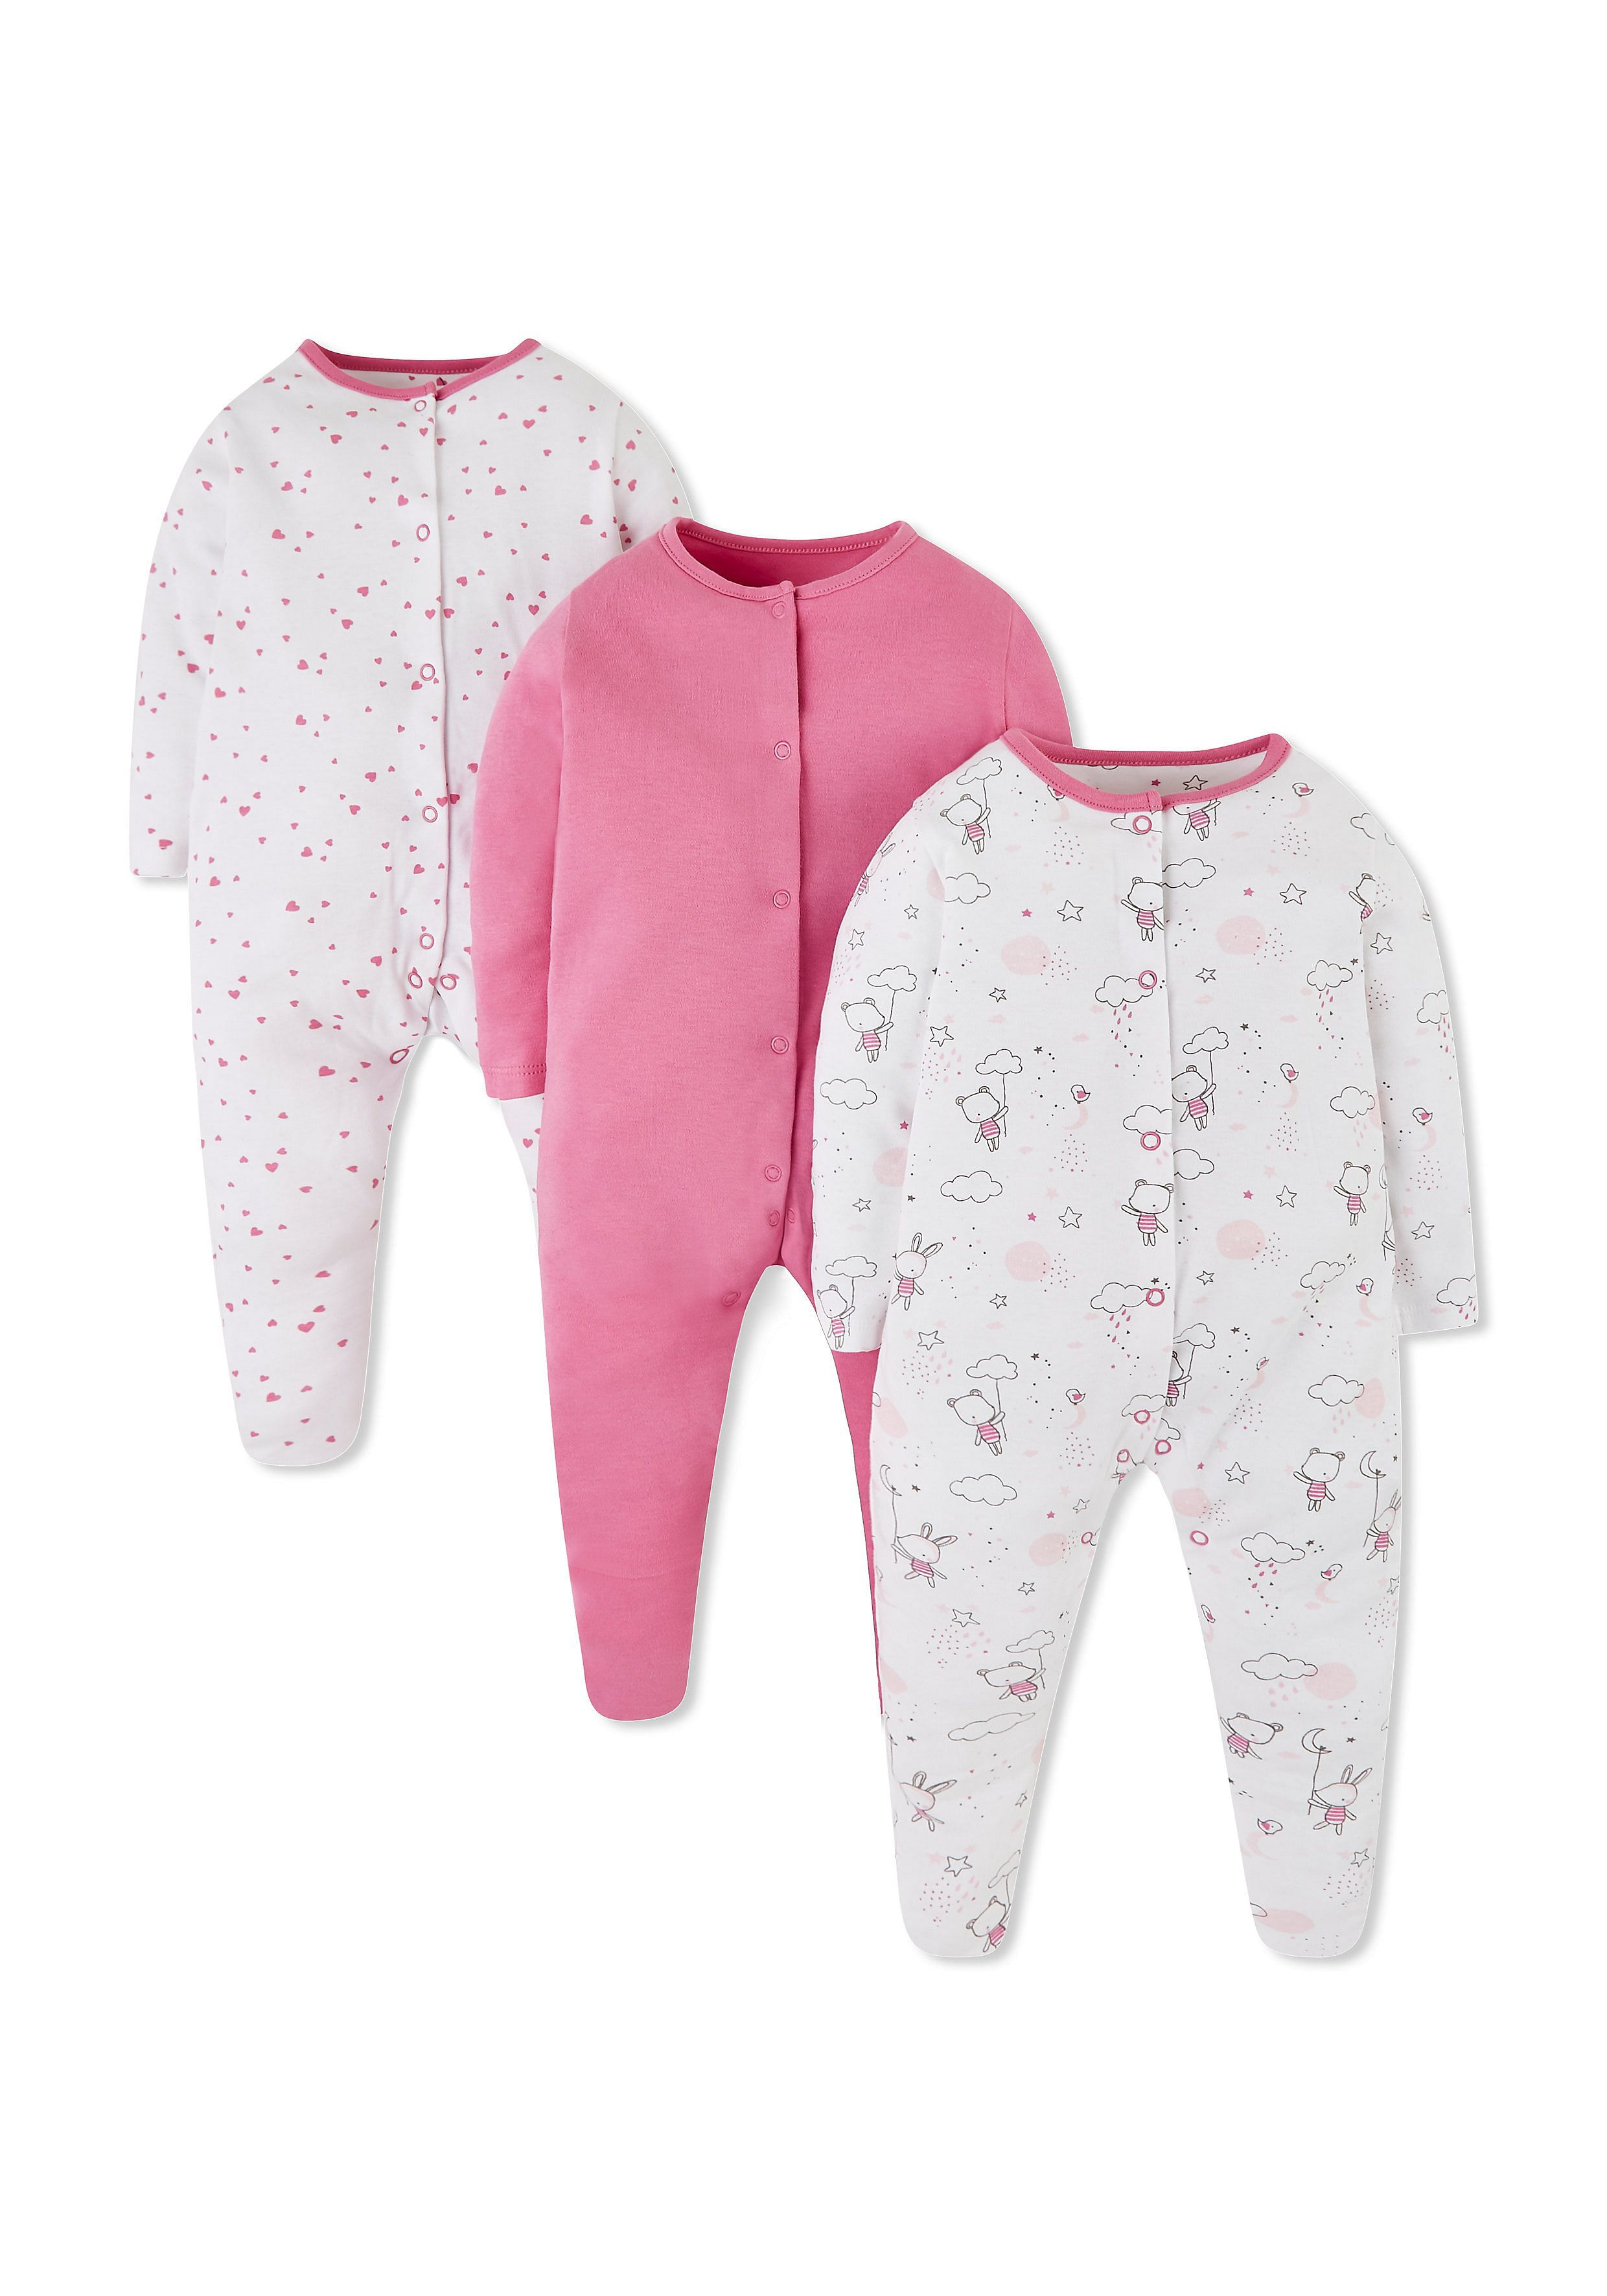 Pink Bunny And Bear Sleepsuits 3 Pack